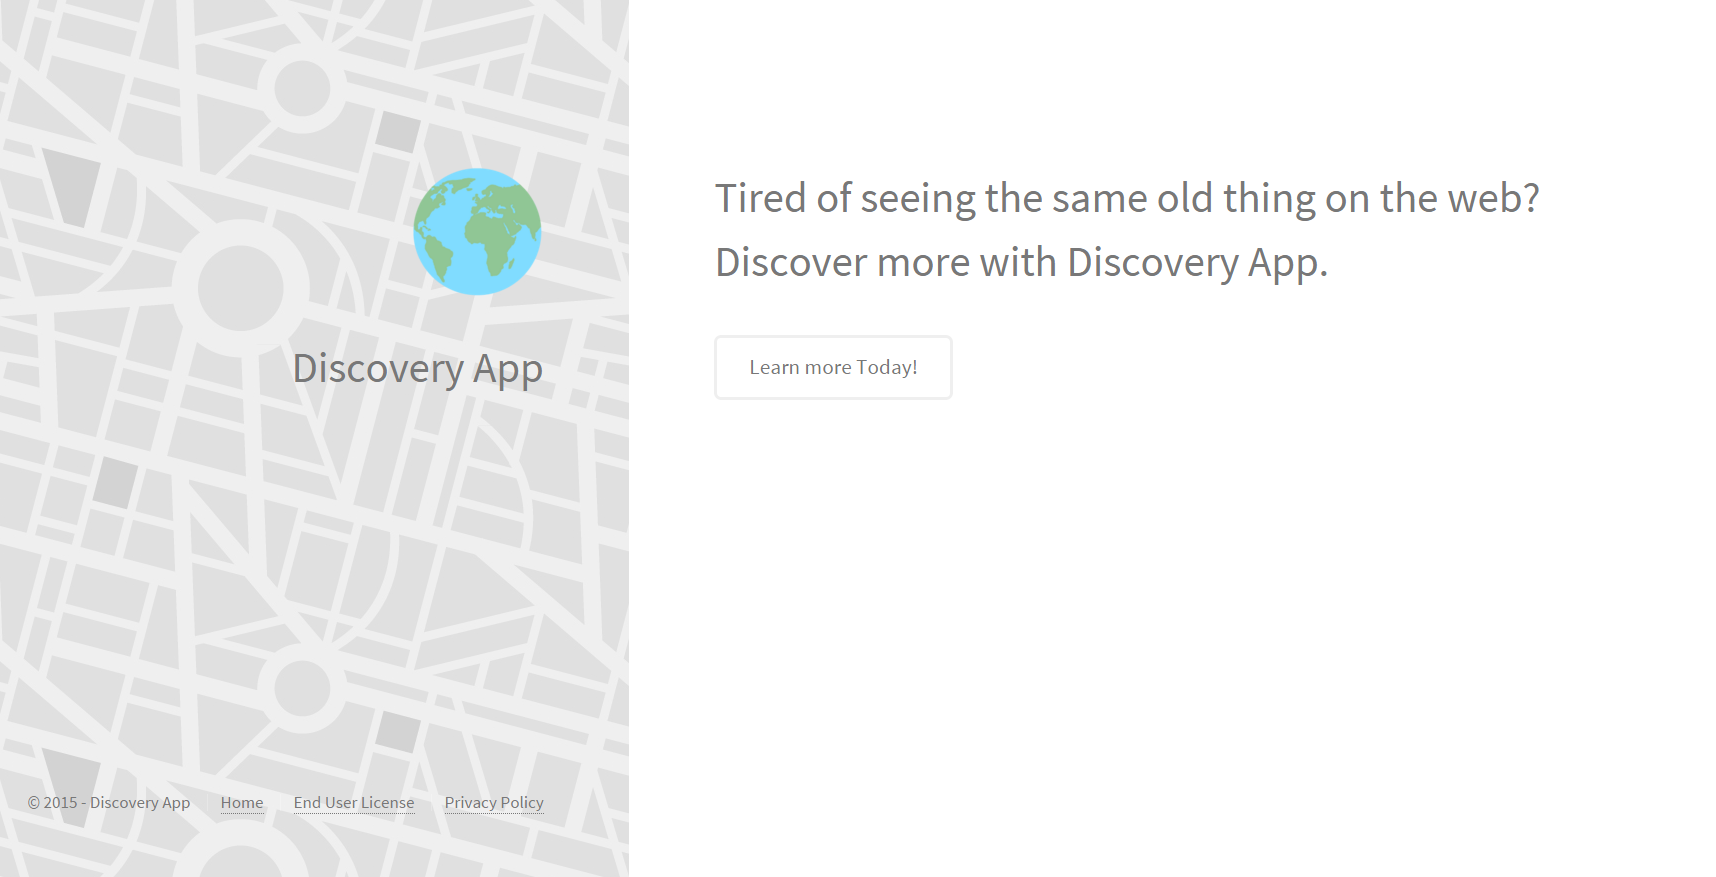 Discovery App ads